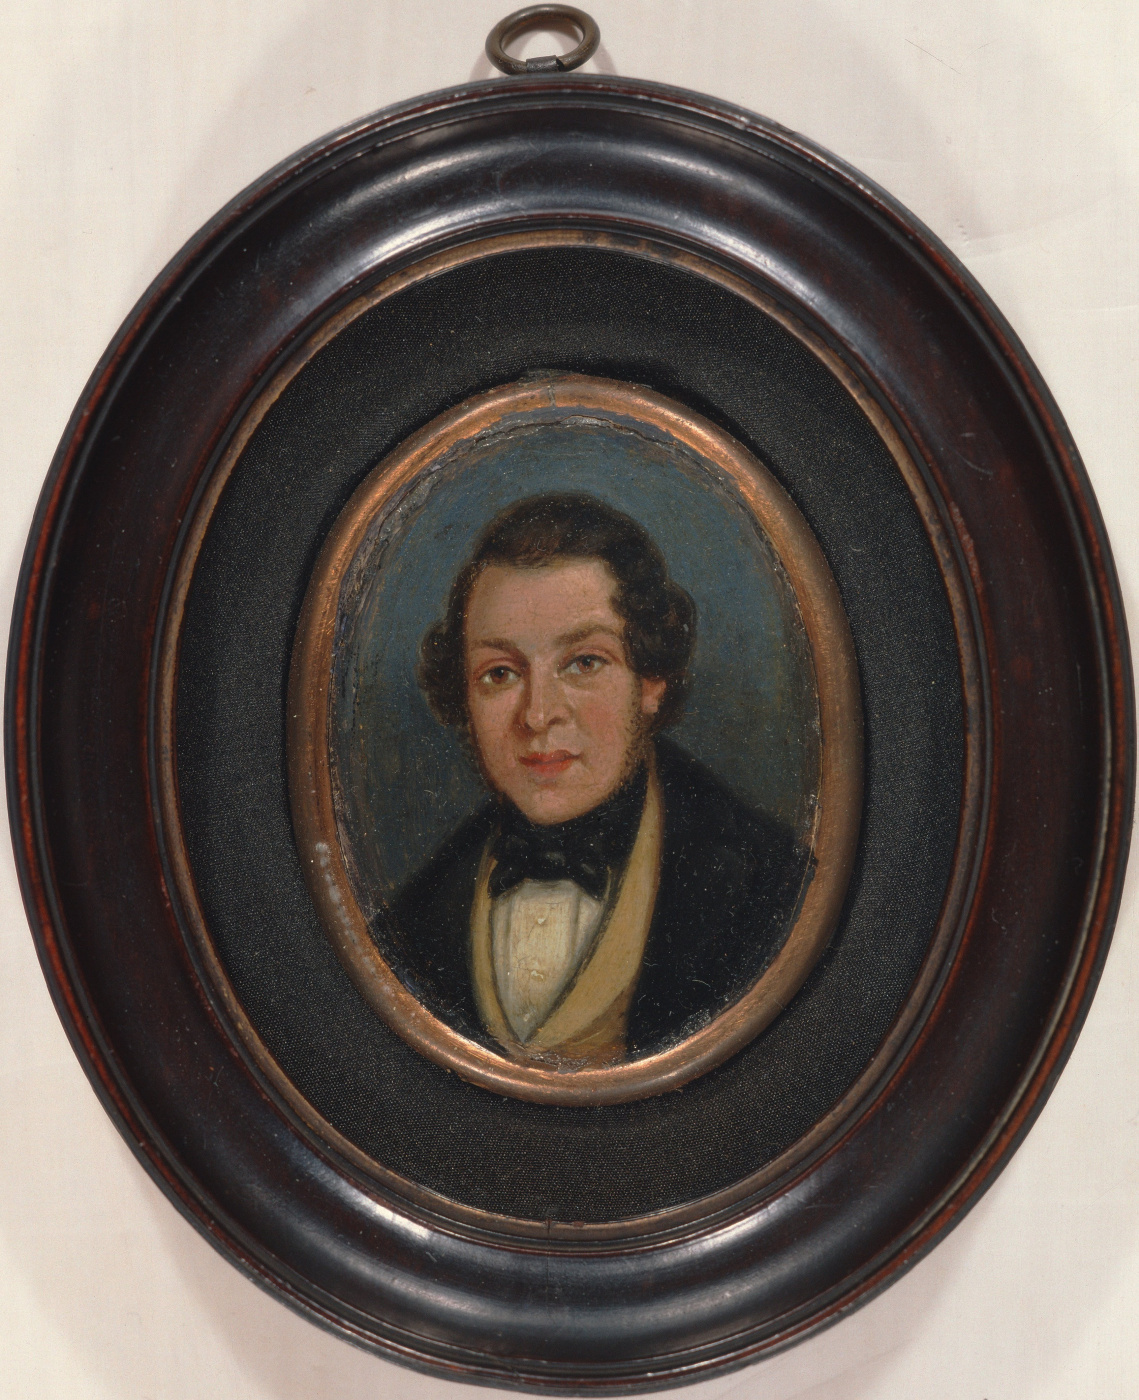 John Constable. Miniature: portrait of Abram constable, brother of the artist